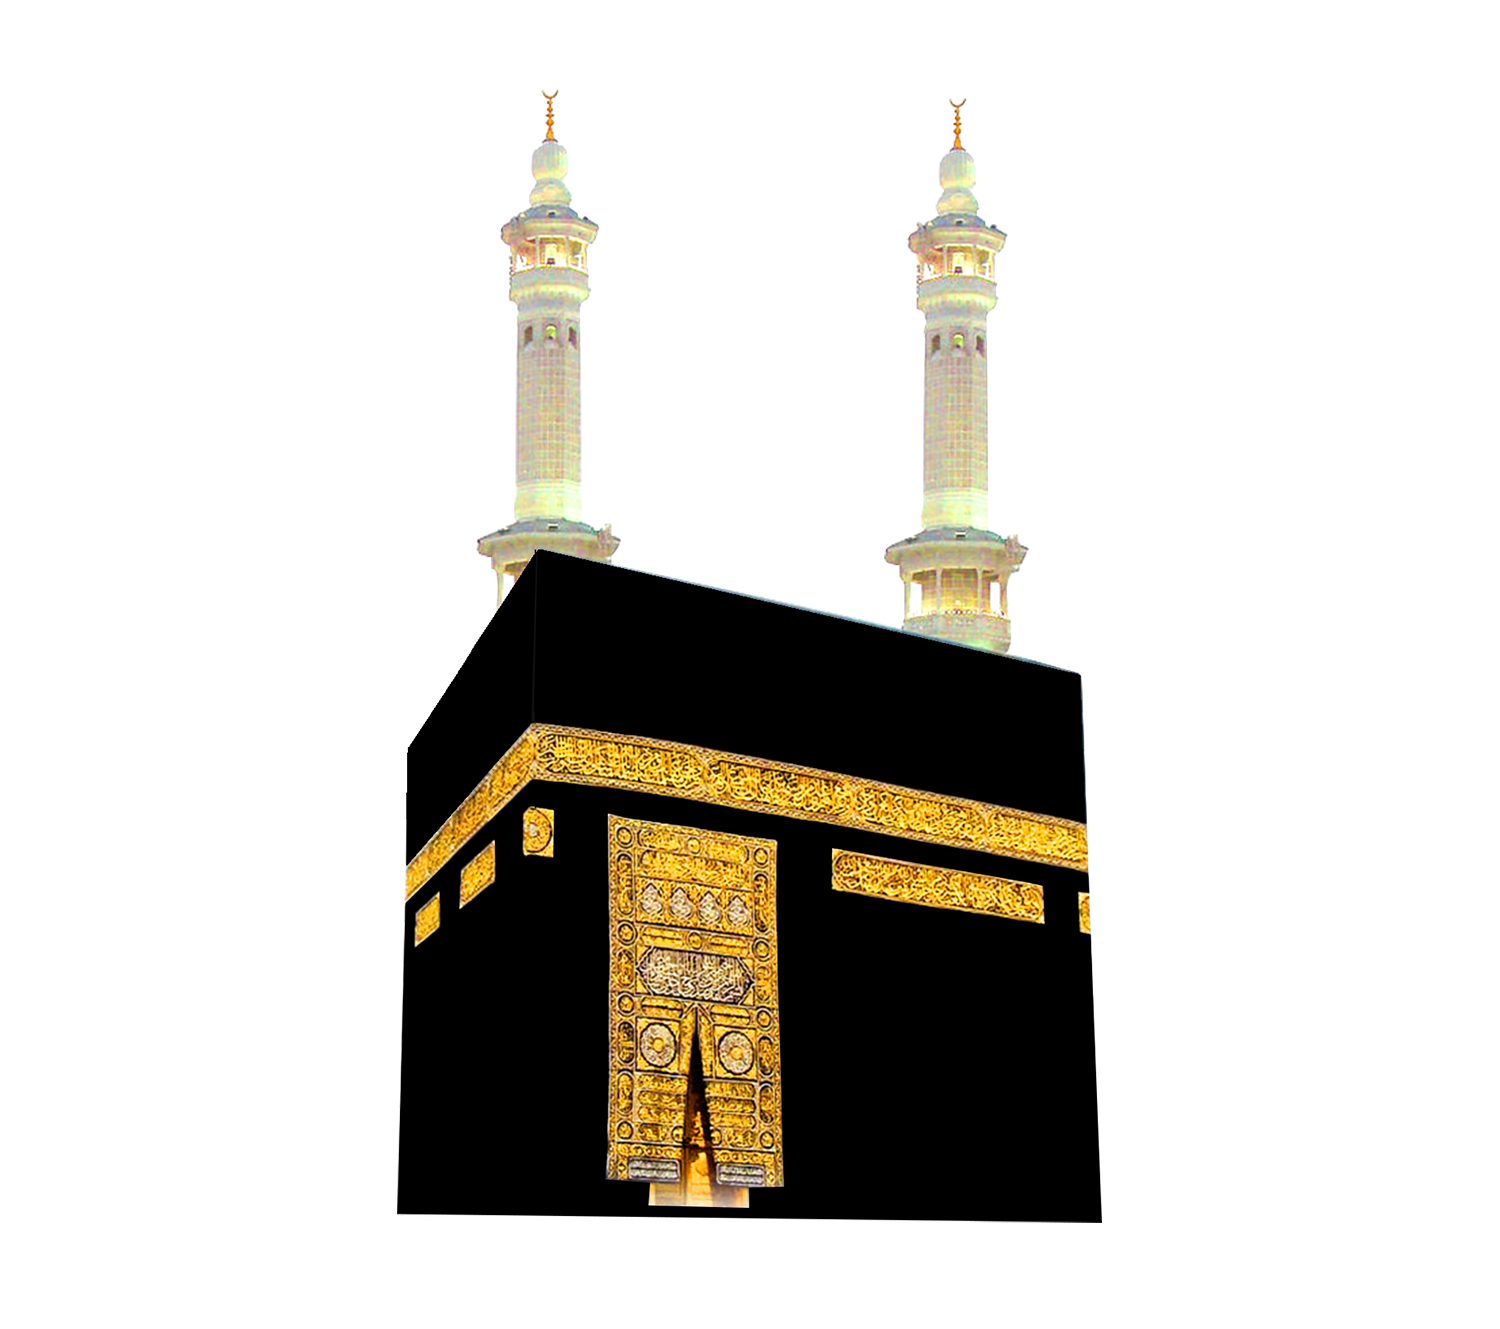 Khana Kaba Png Image Hd Transparent Background Kaba